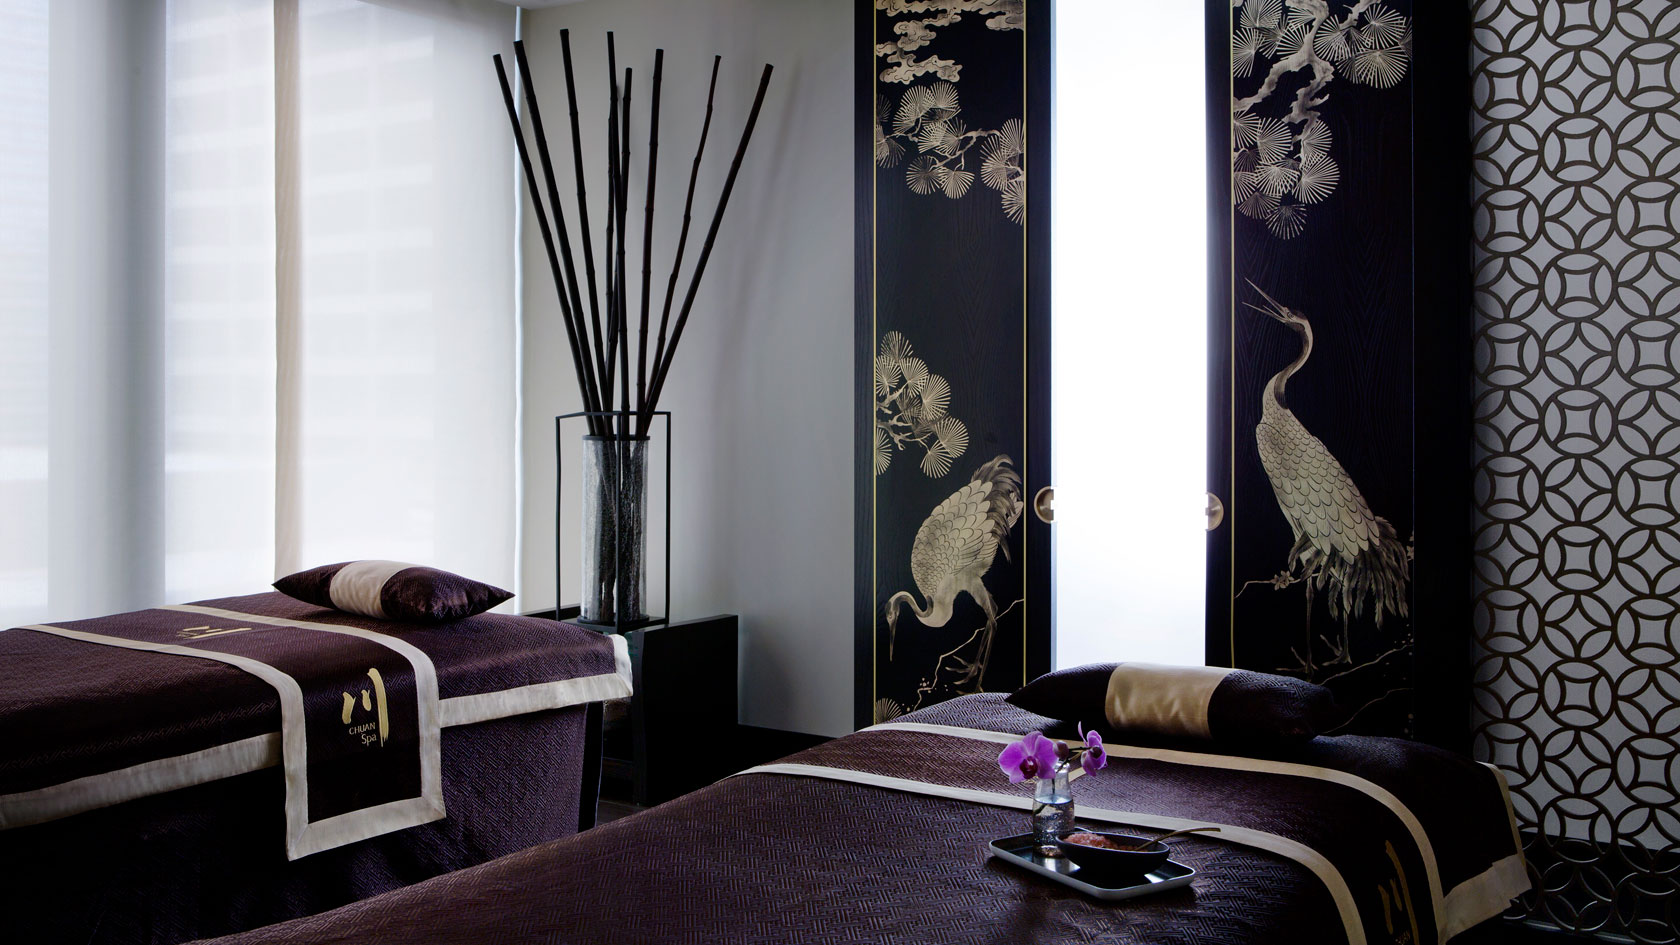 Chuan couples treatment room